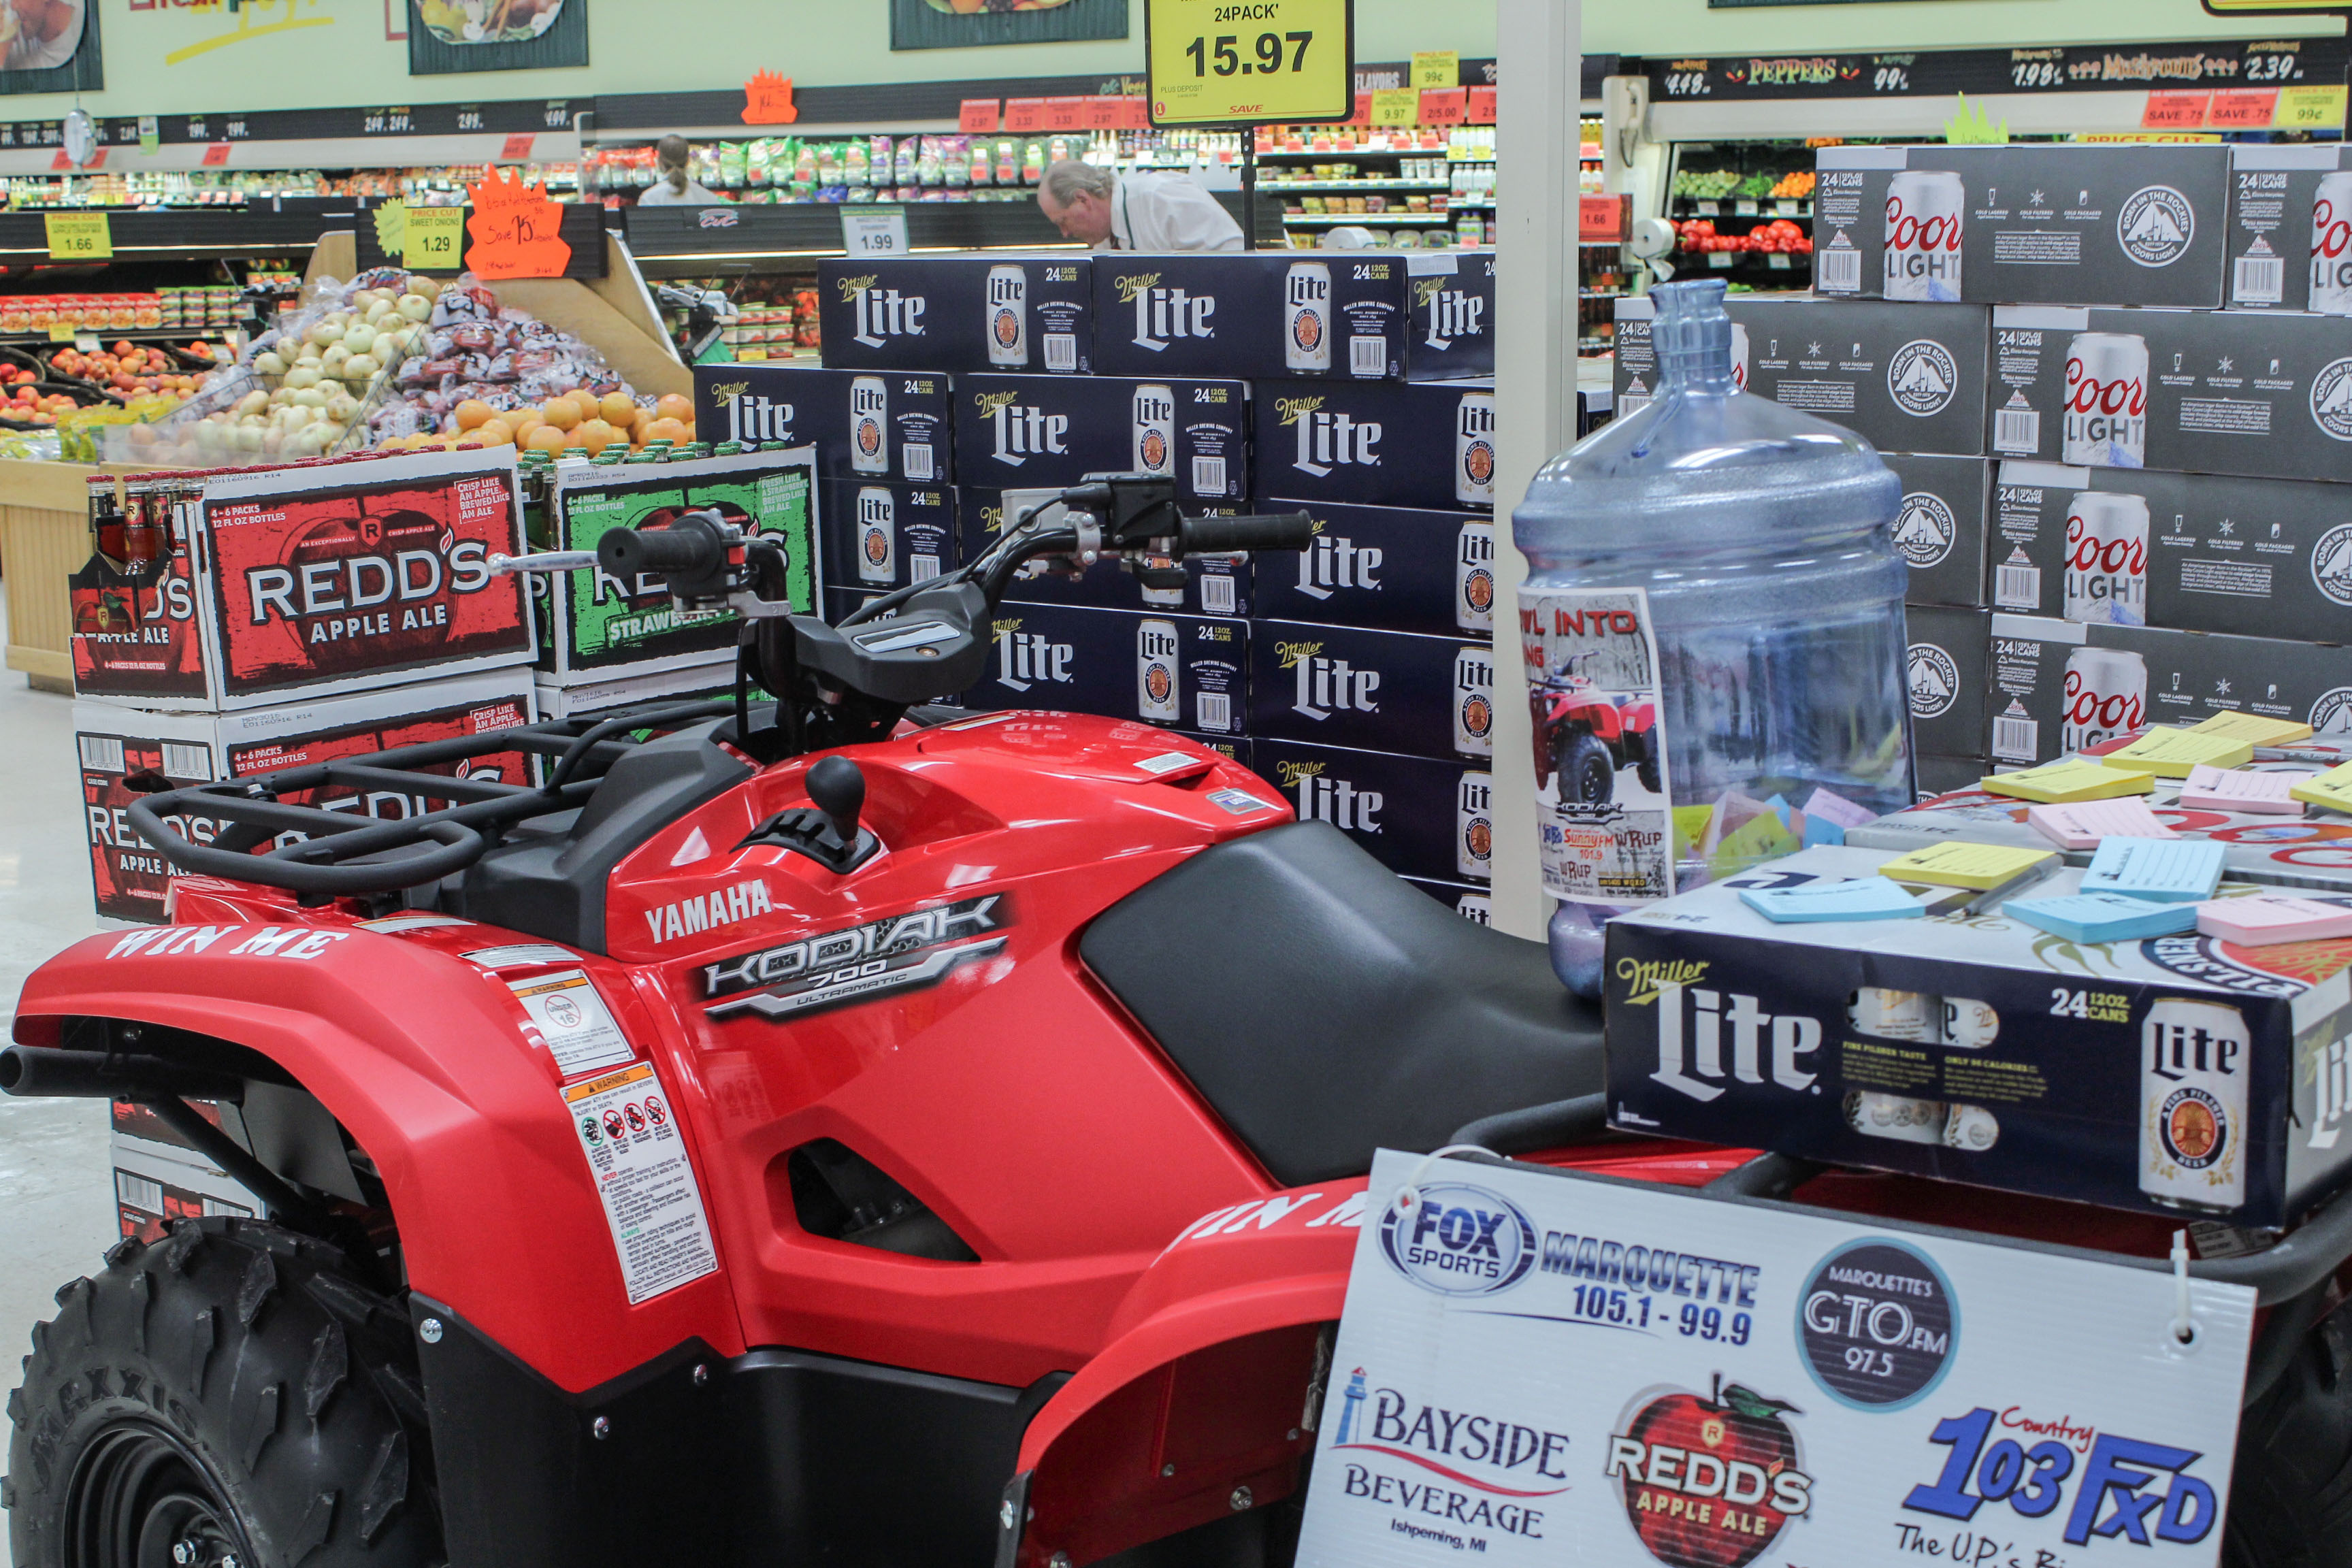 Win This Yamaha ATV at the Great Lakes Radio Quarterly Giveaway with Bayside Beverage and Redd's Apple Ale